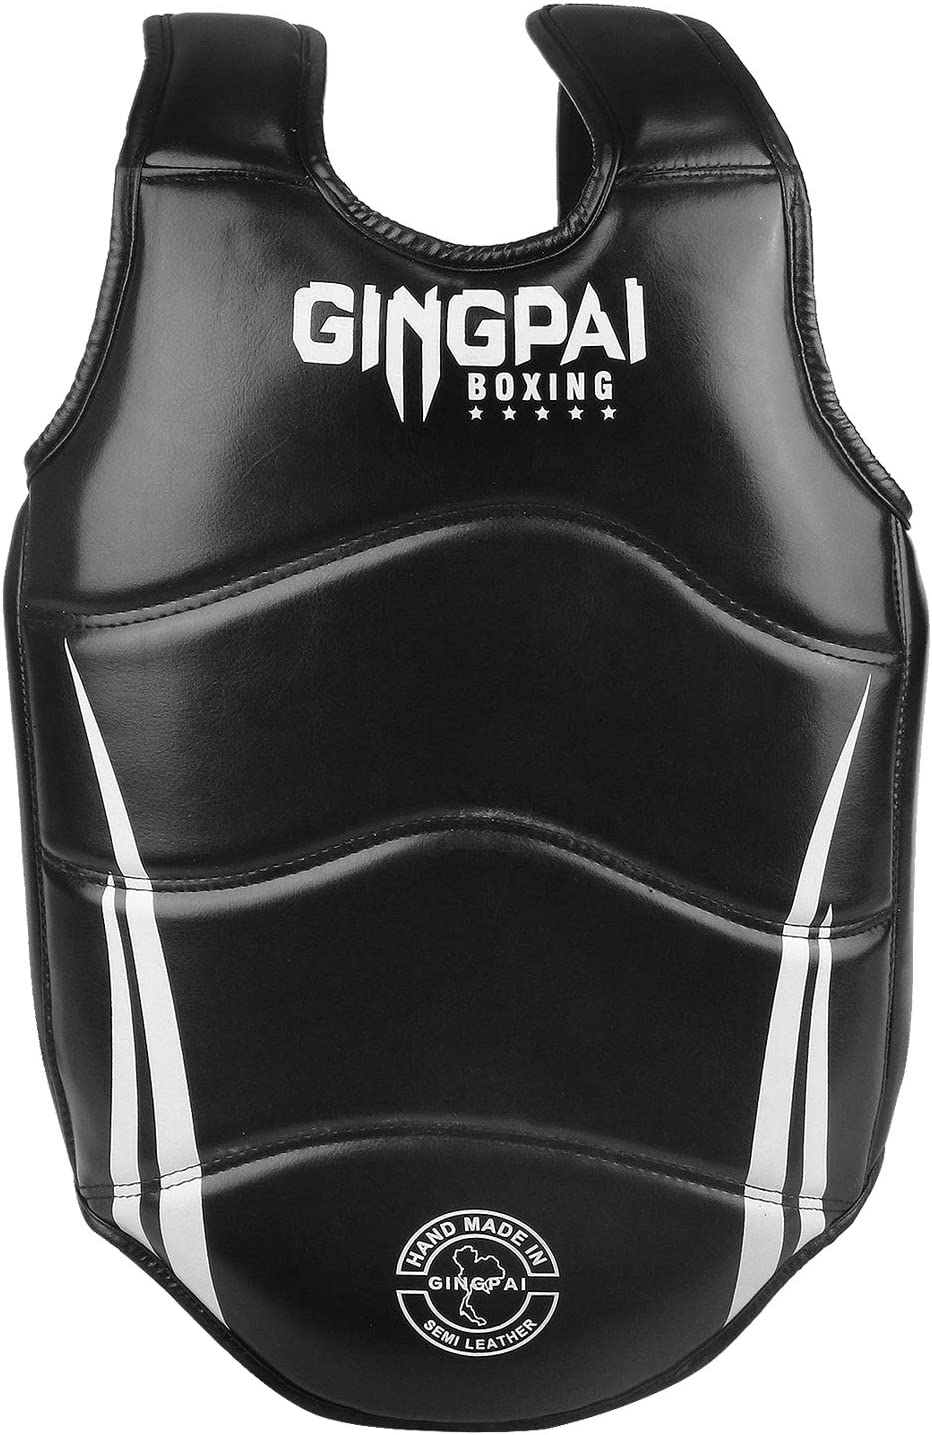 Boxing Chest Guard MMA 4 years warranty Martial Arts Bod Armour Shield Max 60% OFF Solid Rib